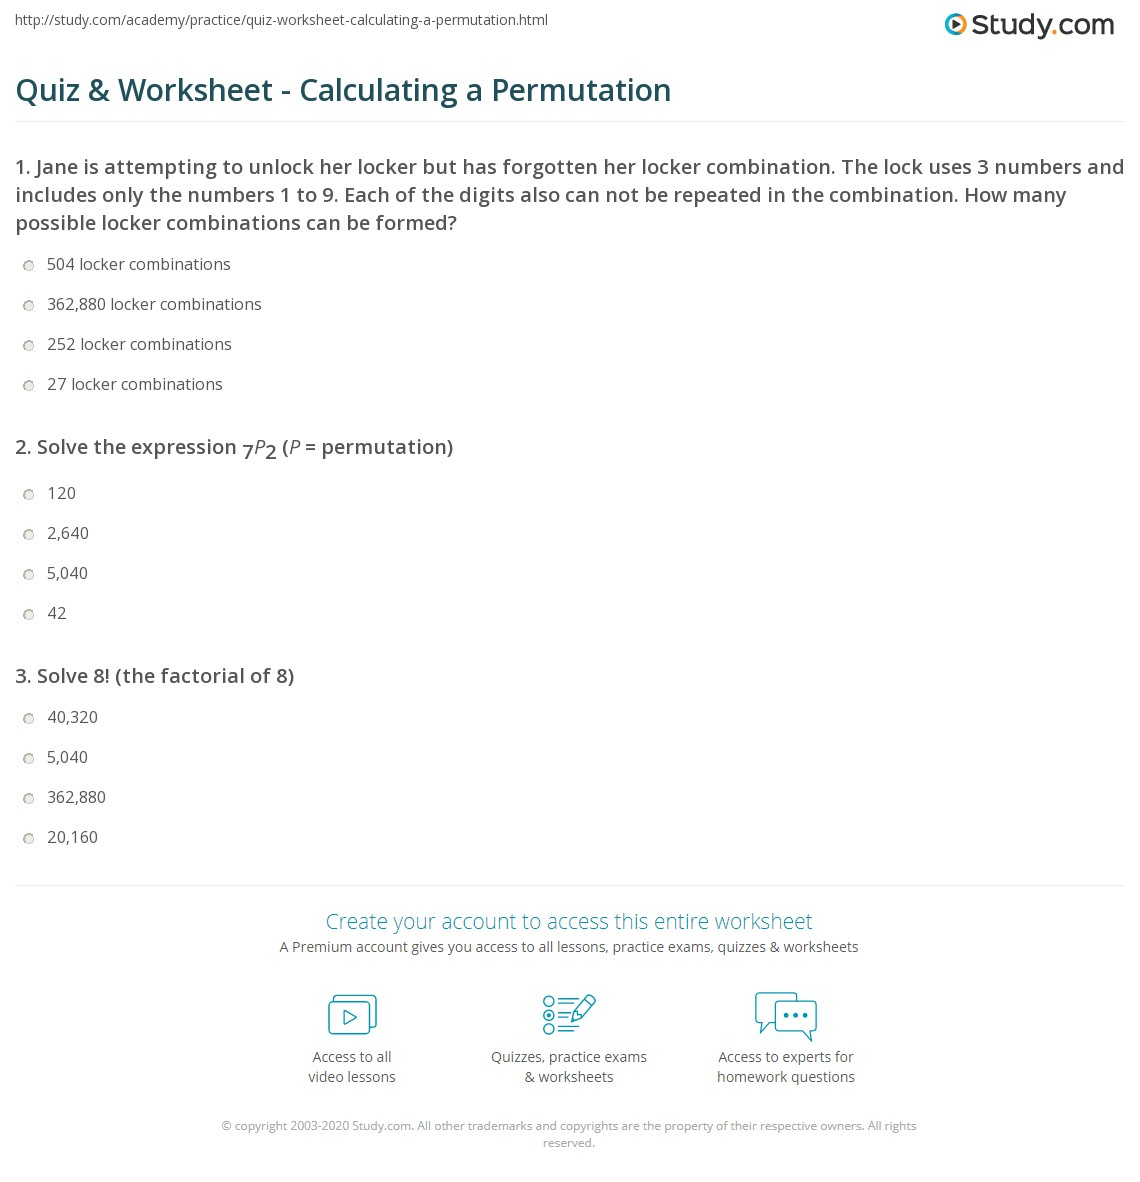 Quiz Worksheet Calculating a Permutation – Combination and Permutation Worksheet